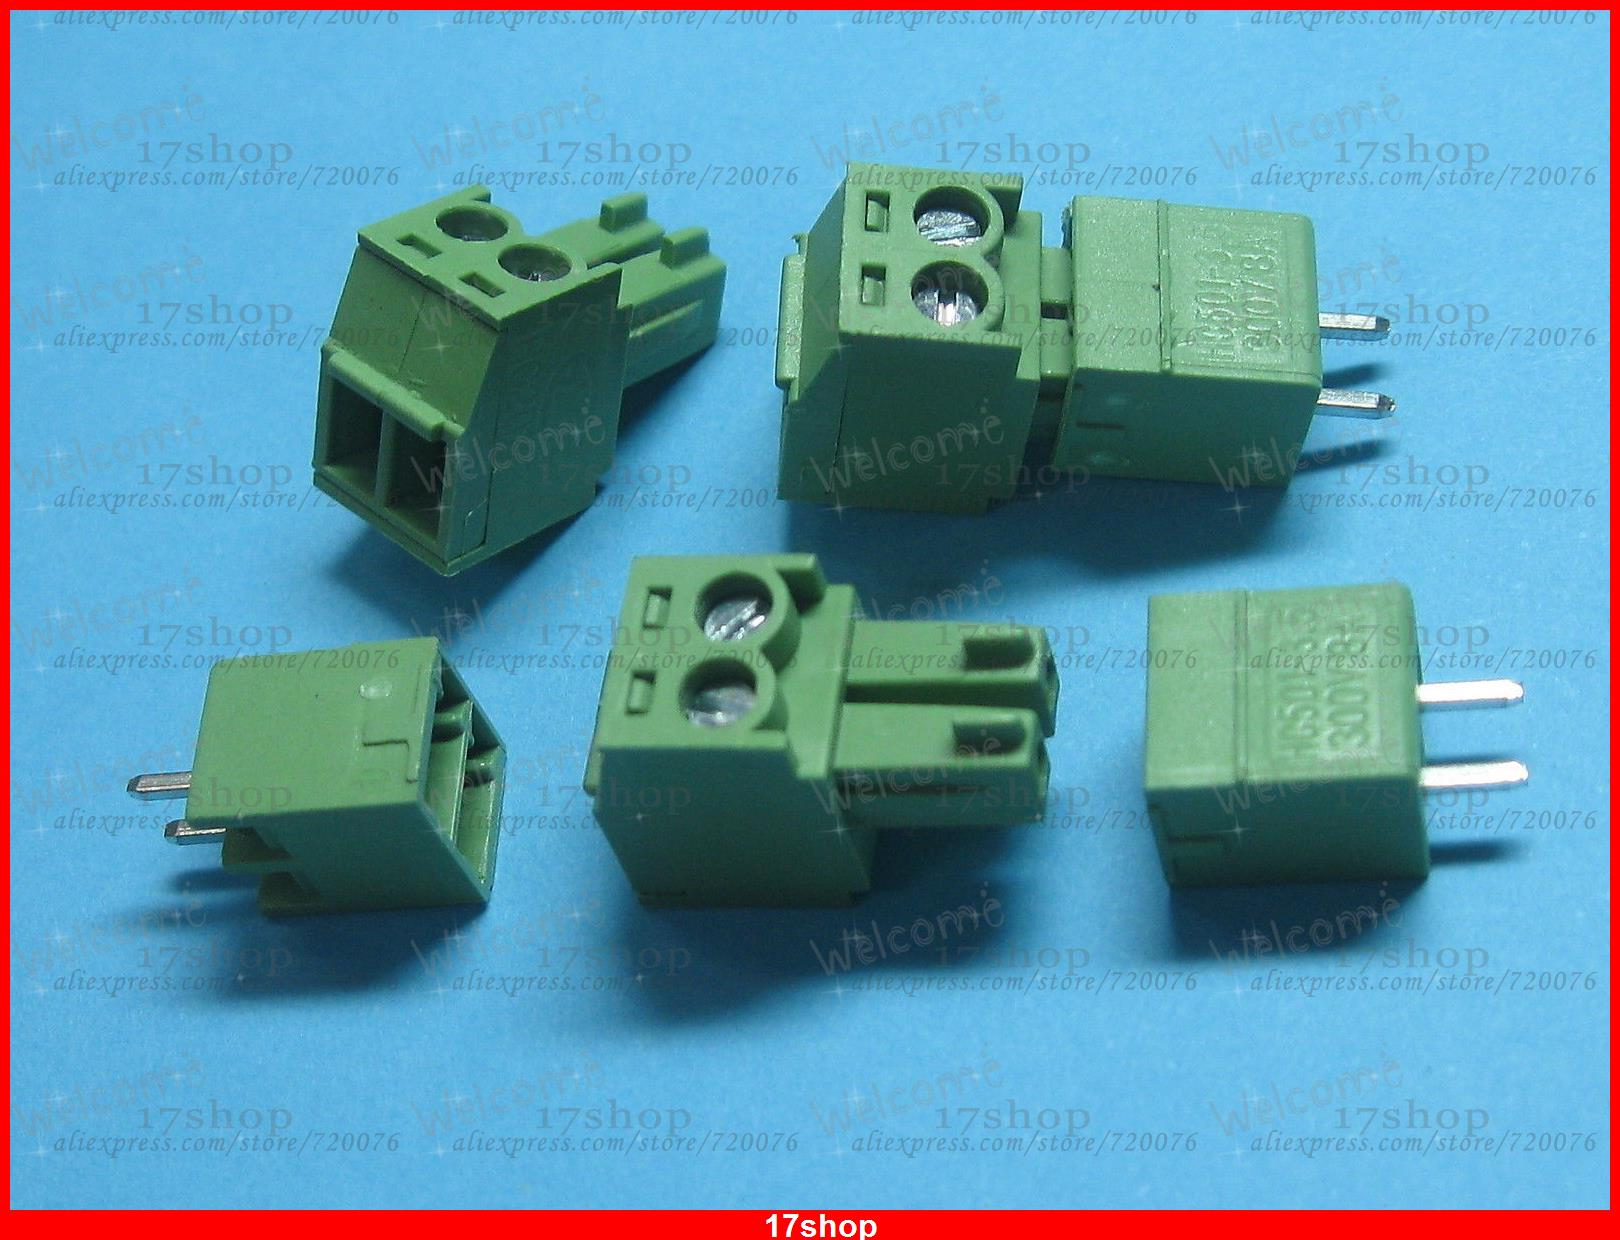 200 x Pitch 3.81mm 2way/pin Screw Terminal Block Connector Green Pluggable Type